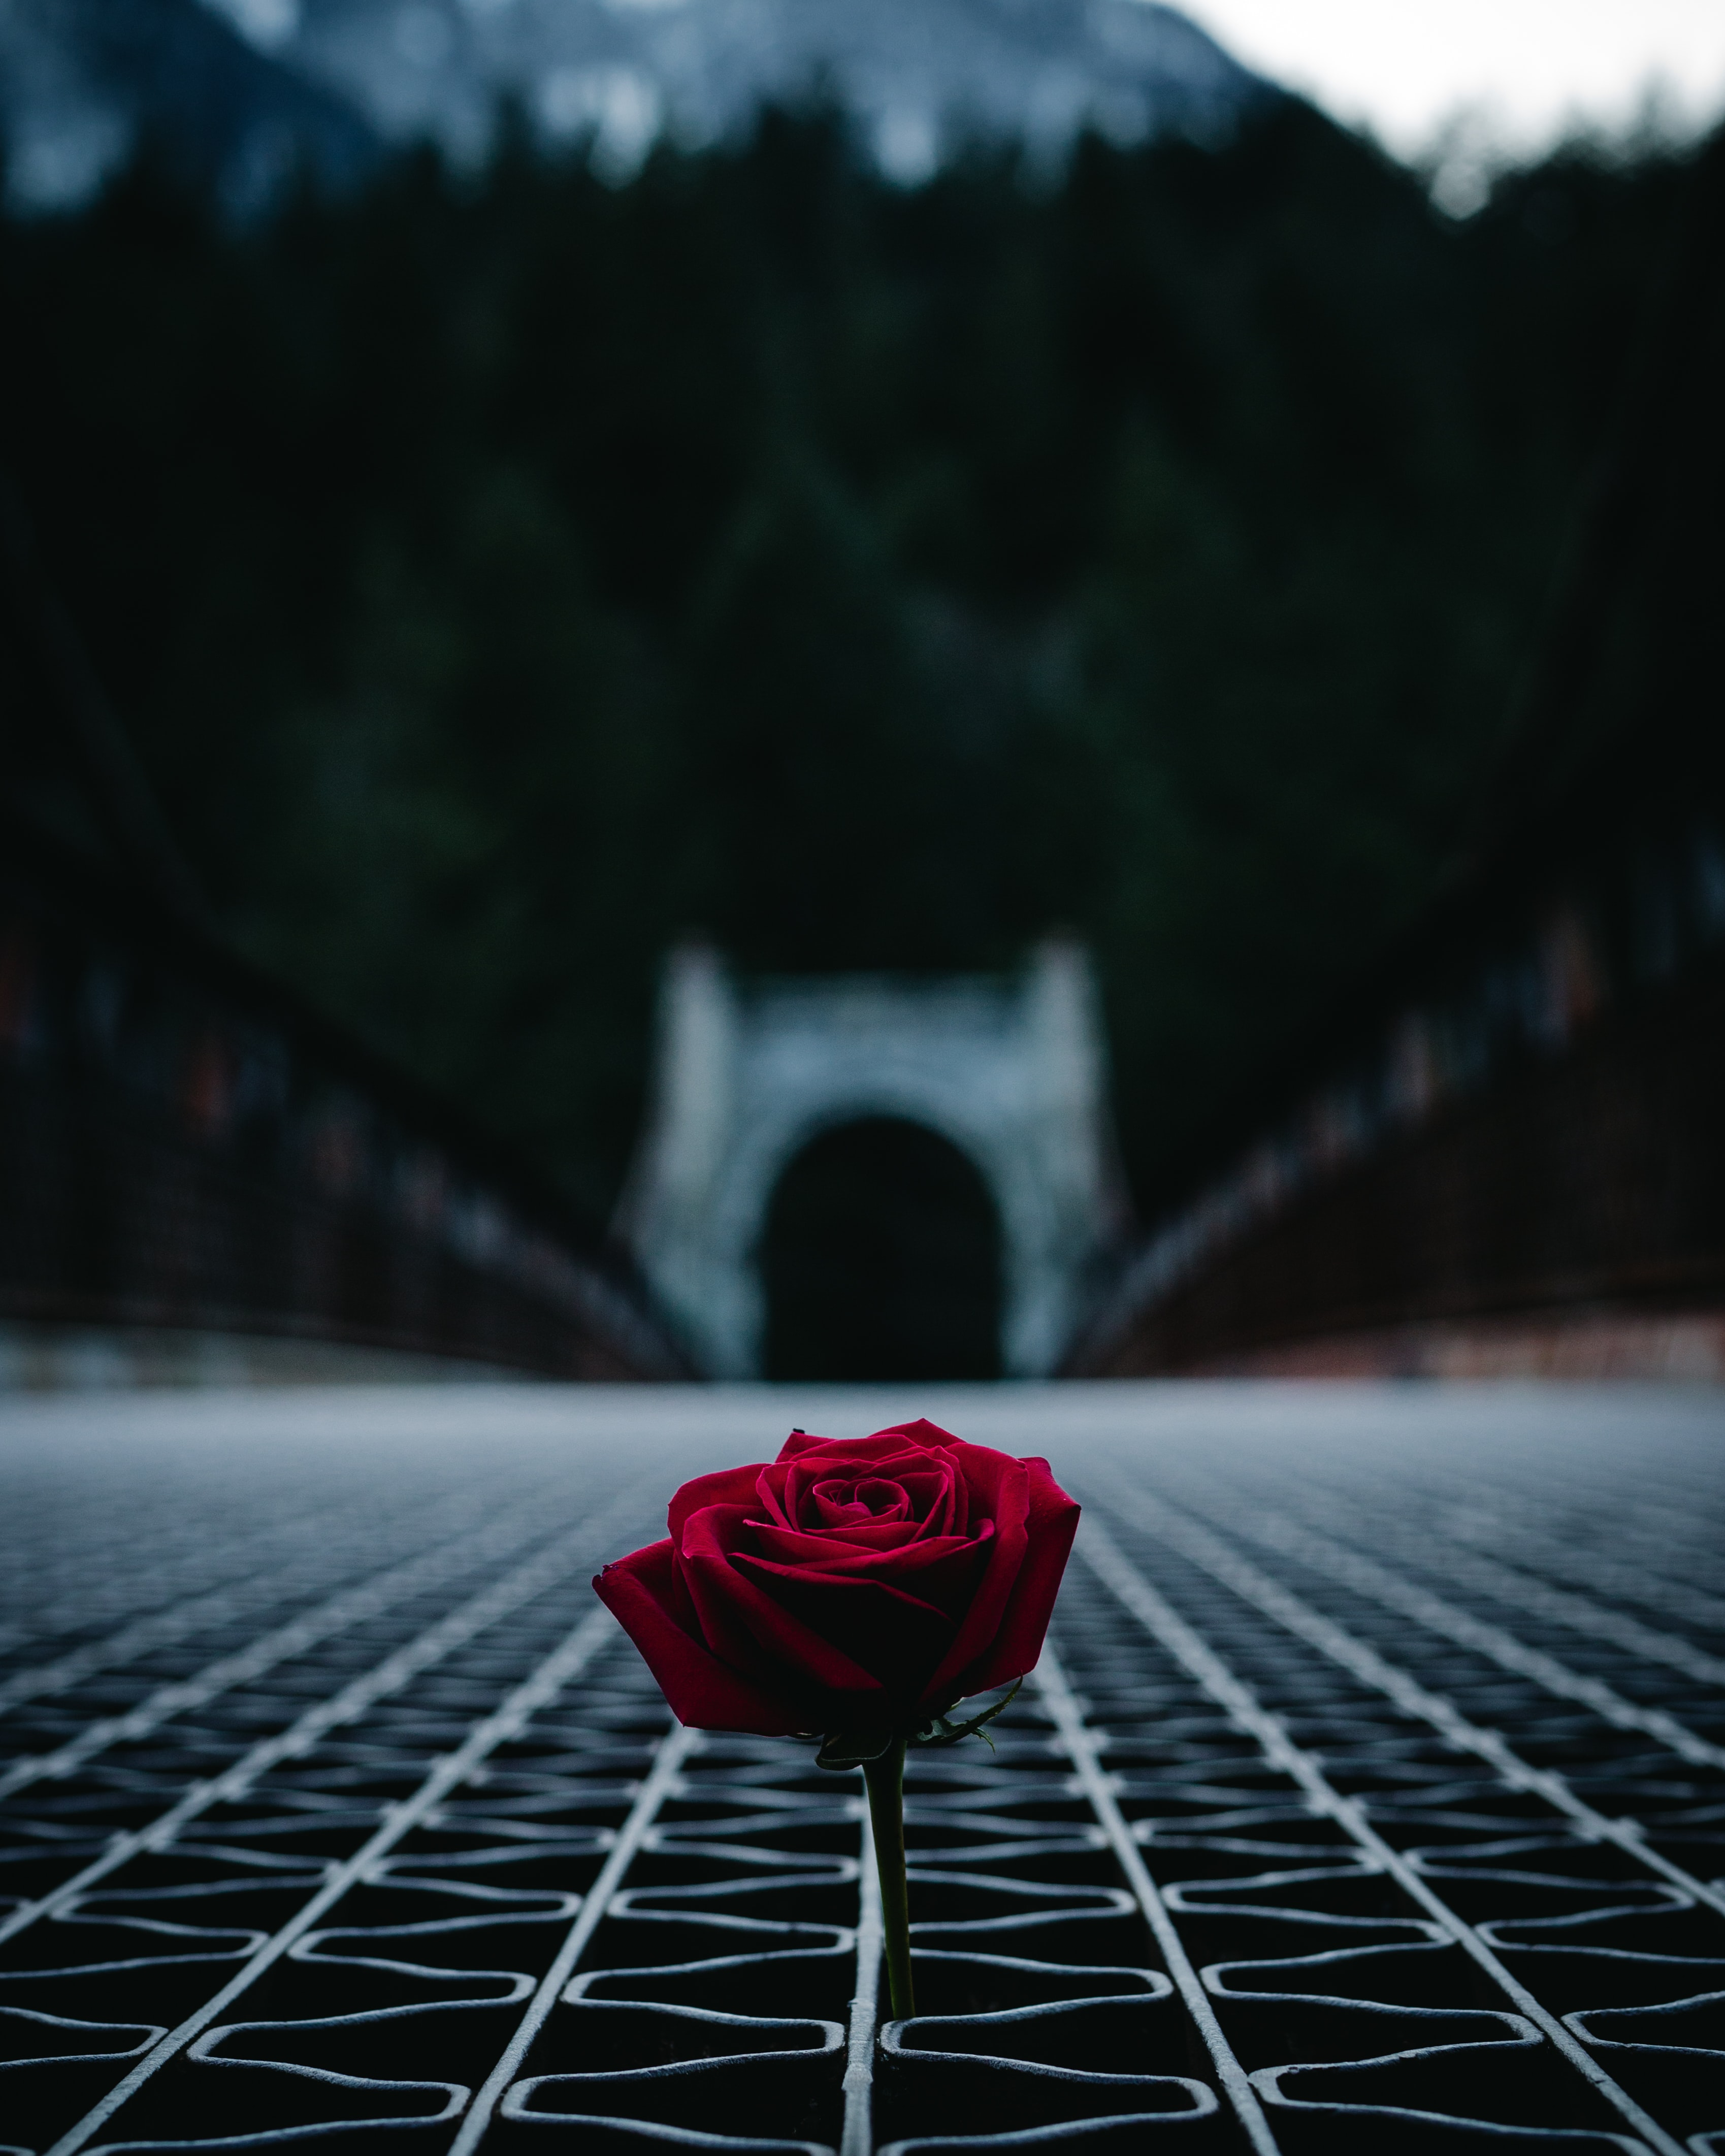 red rose in the middle of bridge during daytime